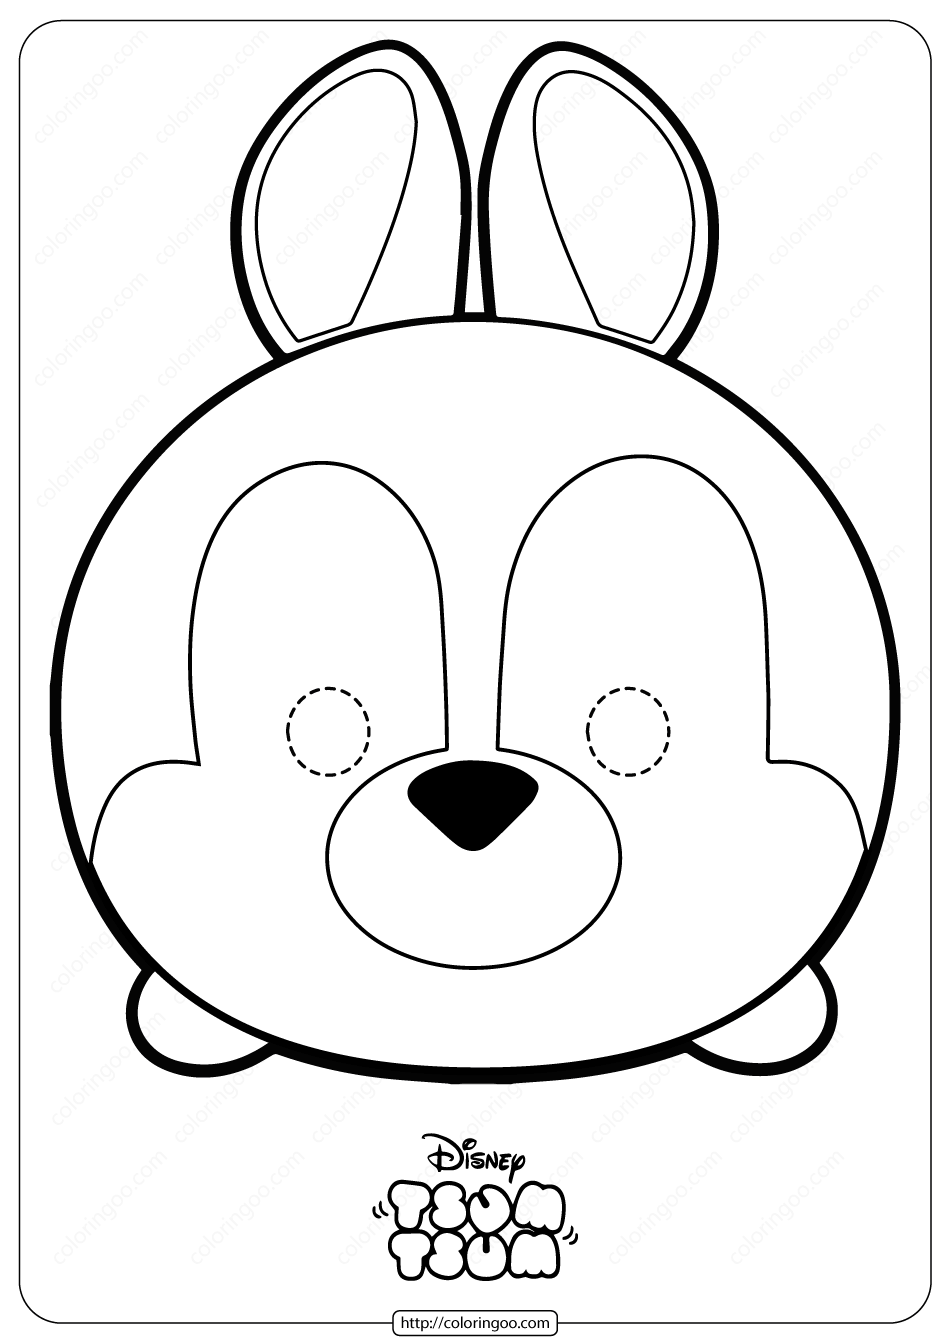 Disney Tsum Tsum Rabbit Mask Coloring